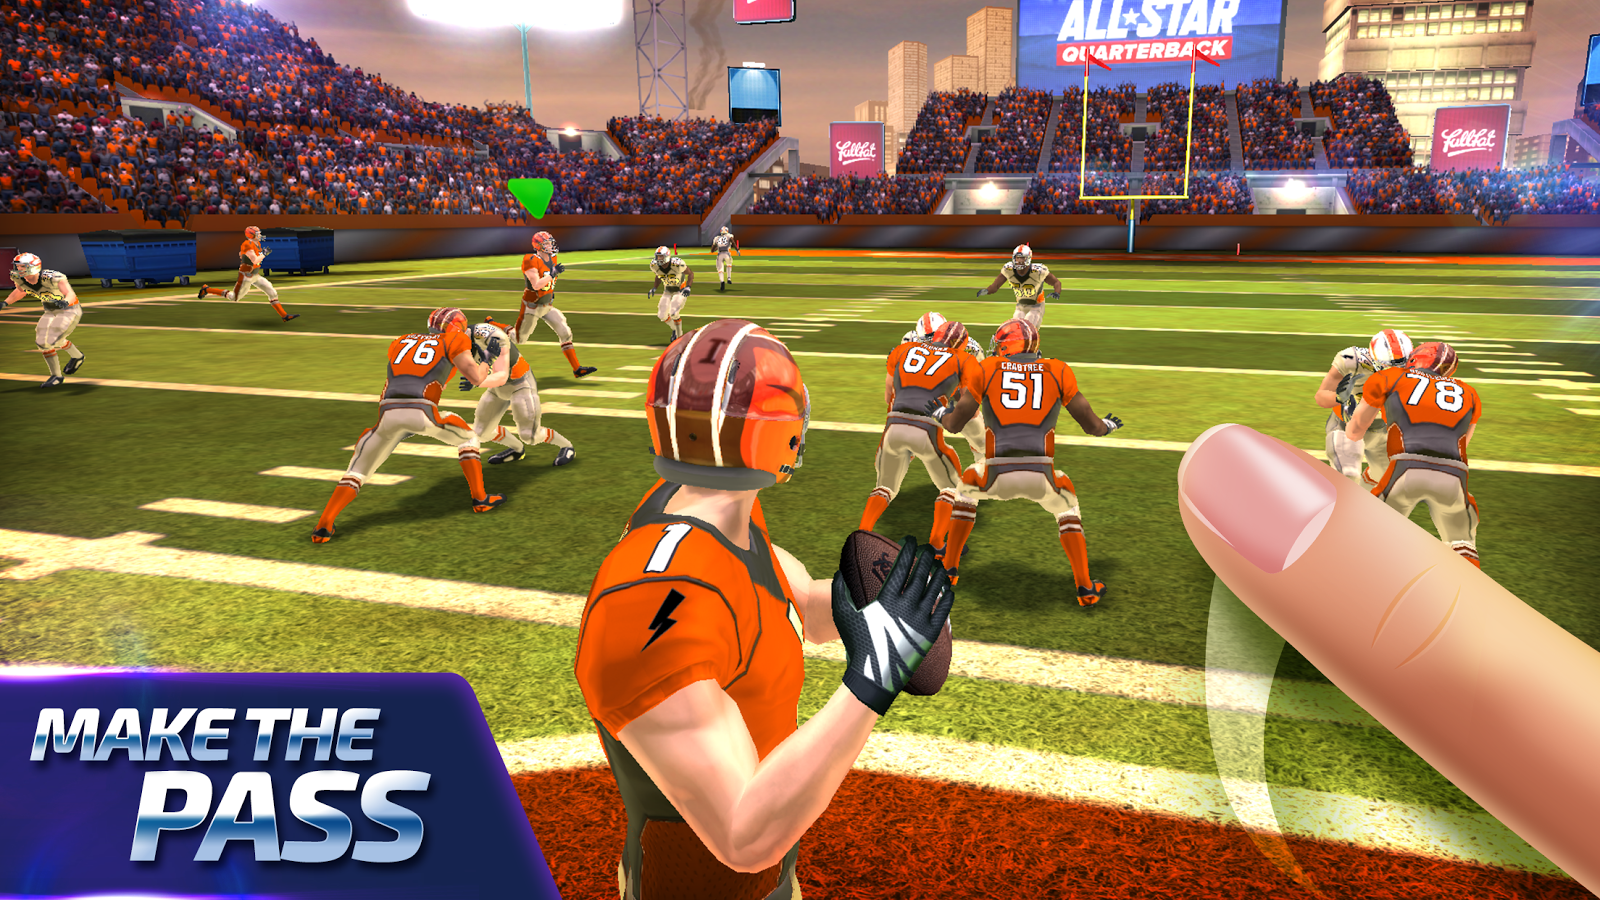 All Star Quarterback 17 Screenshot 11